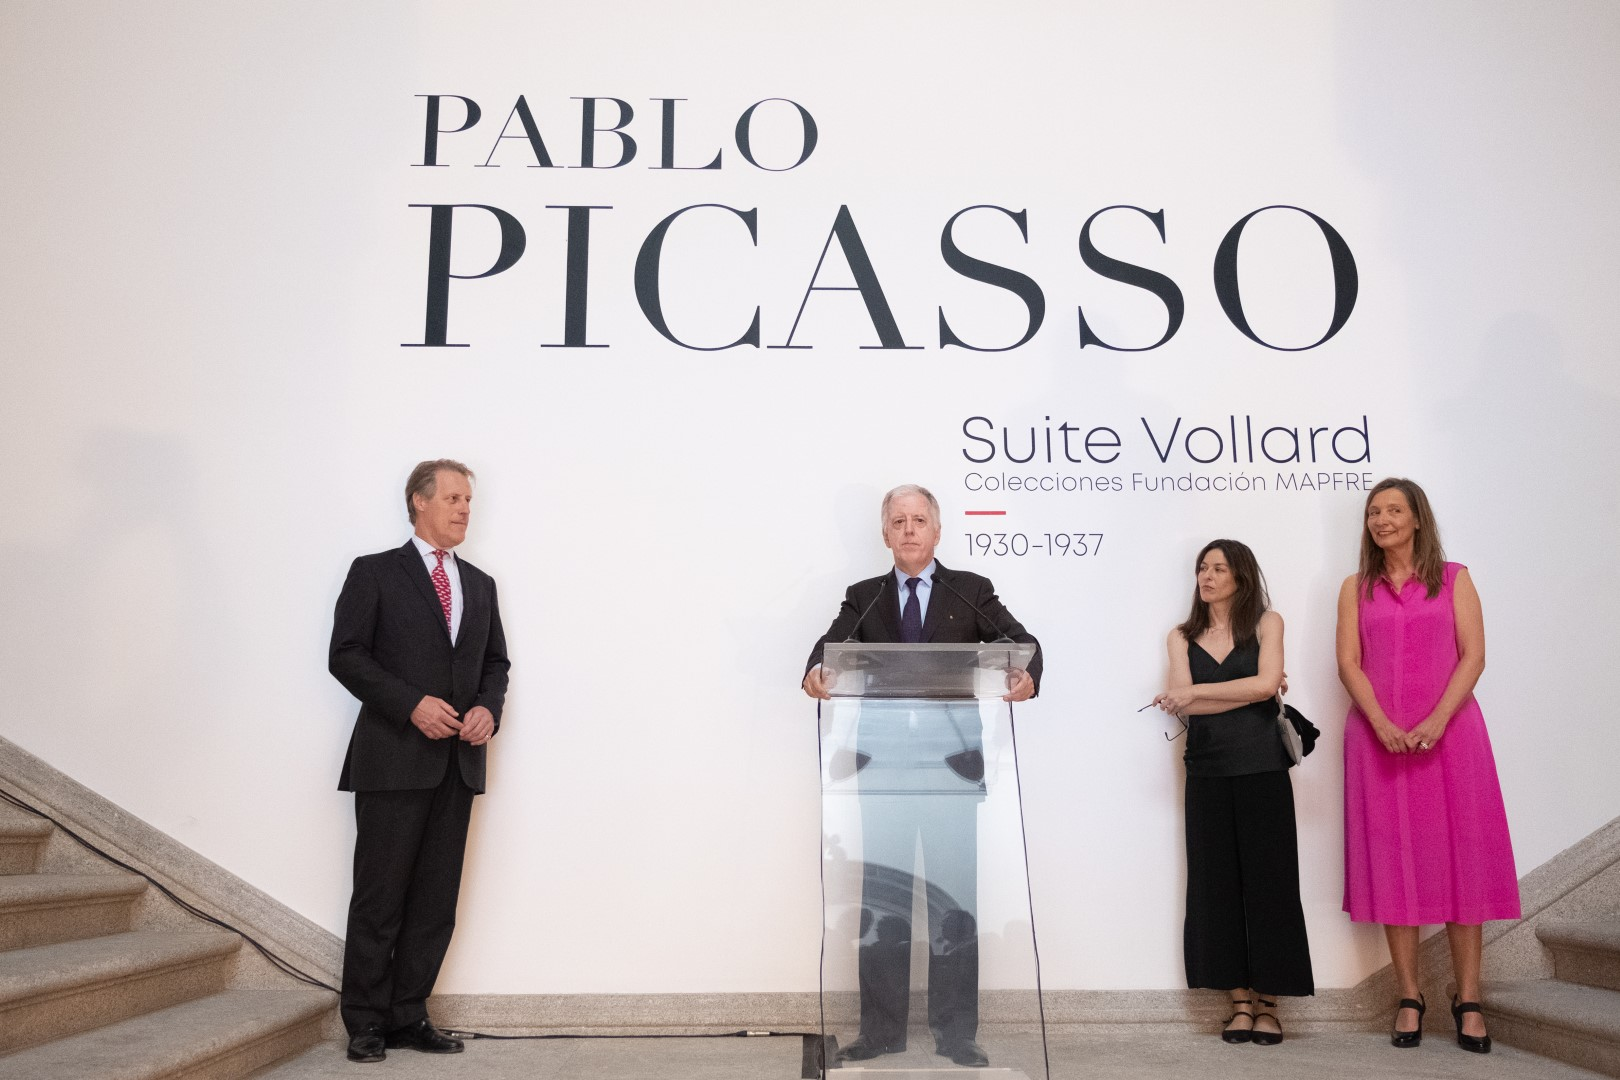 http://www.mmipo.pt/assets/misc/Not%C3%ADcias/2019/2019-05-30%20Inaugura%C3%A7%C3%A3o%20Picasso/DSCF2254.jpg